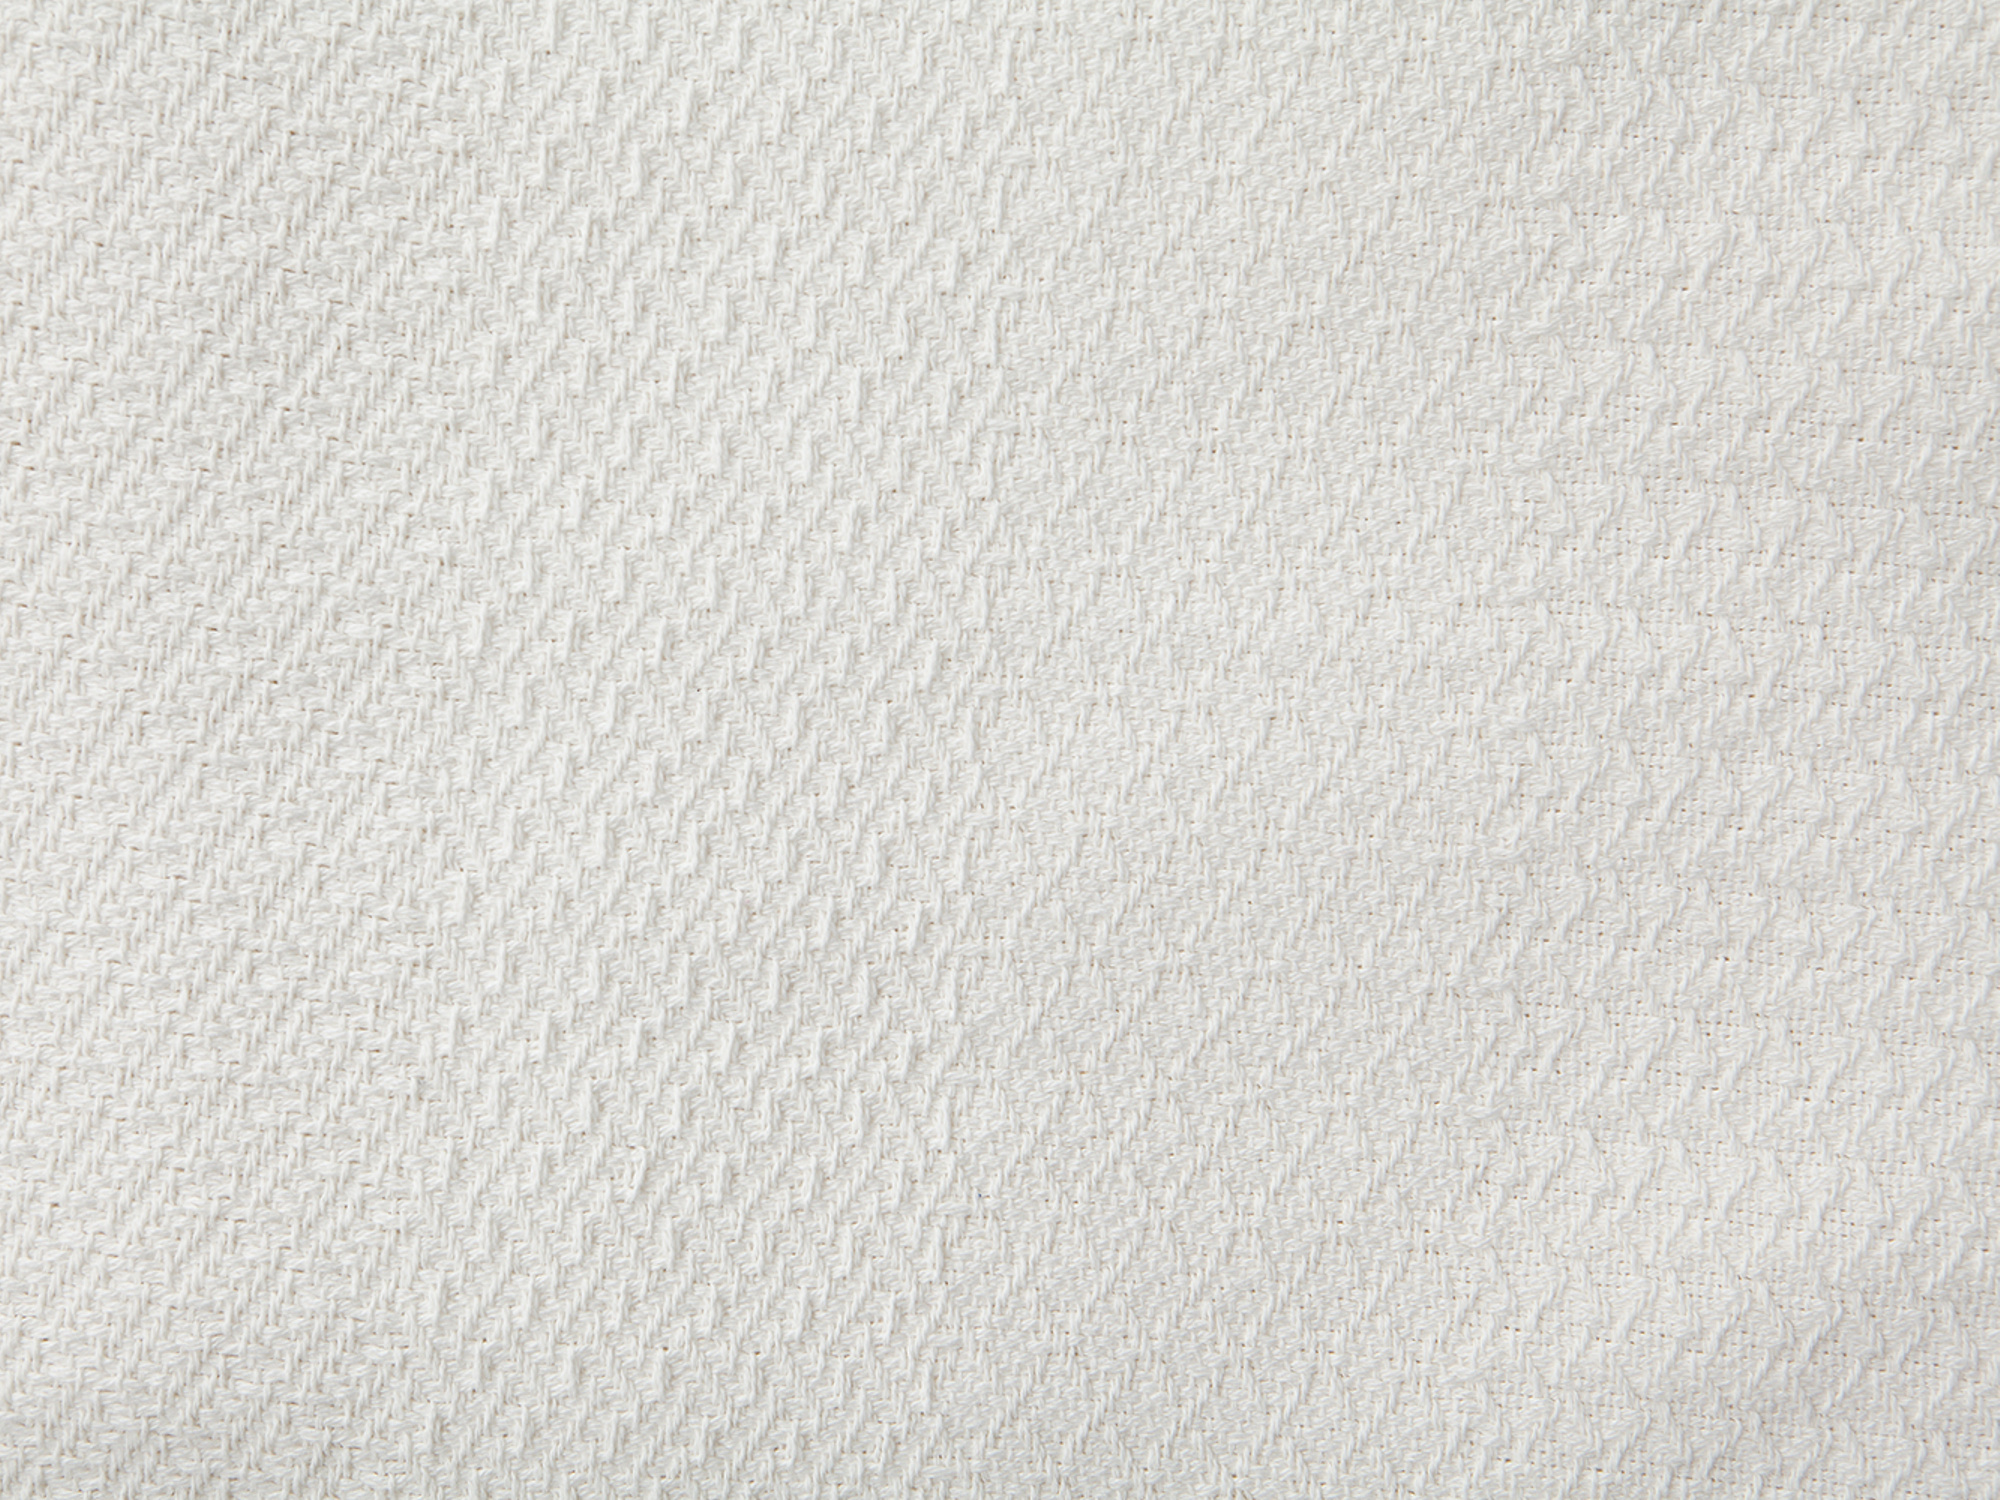 Structured Cotton Bedspread, White